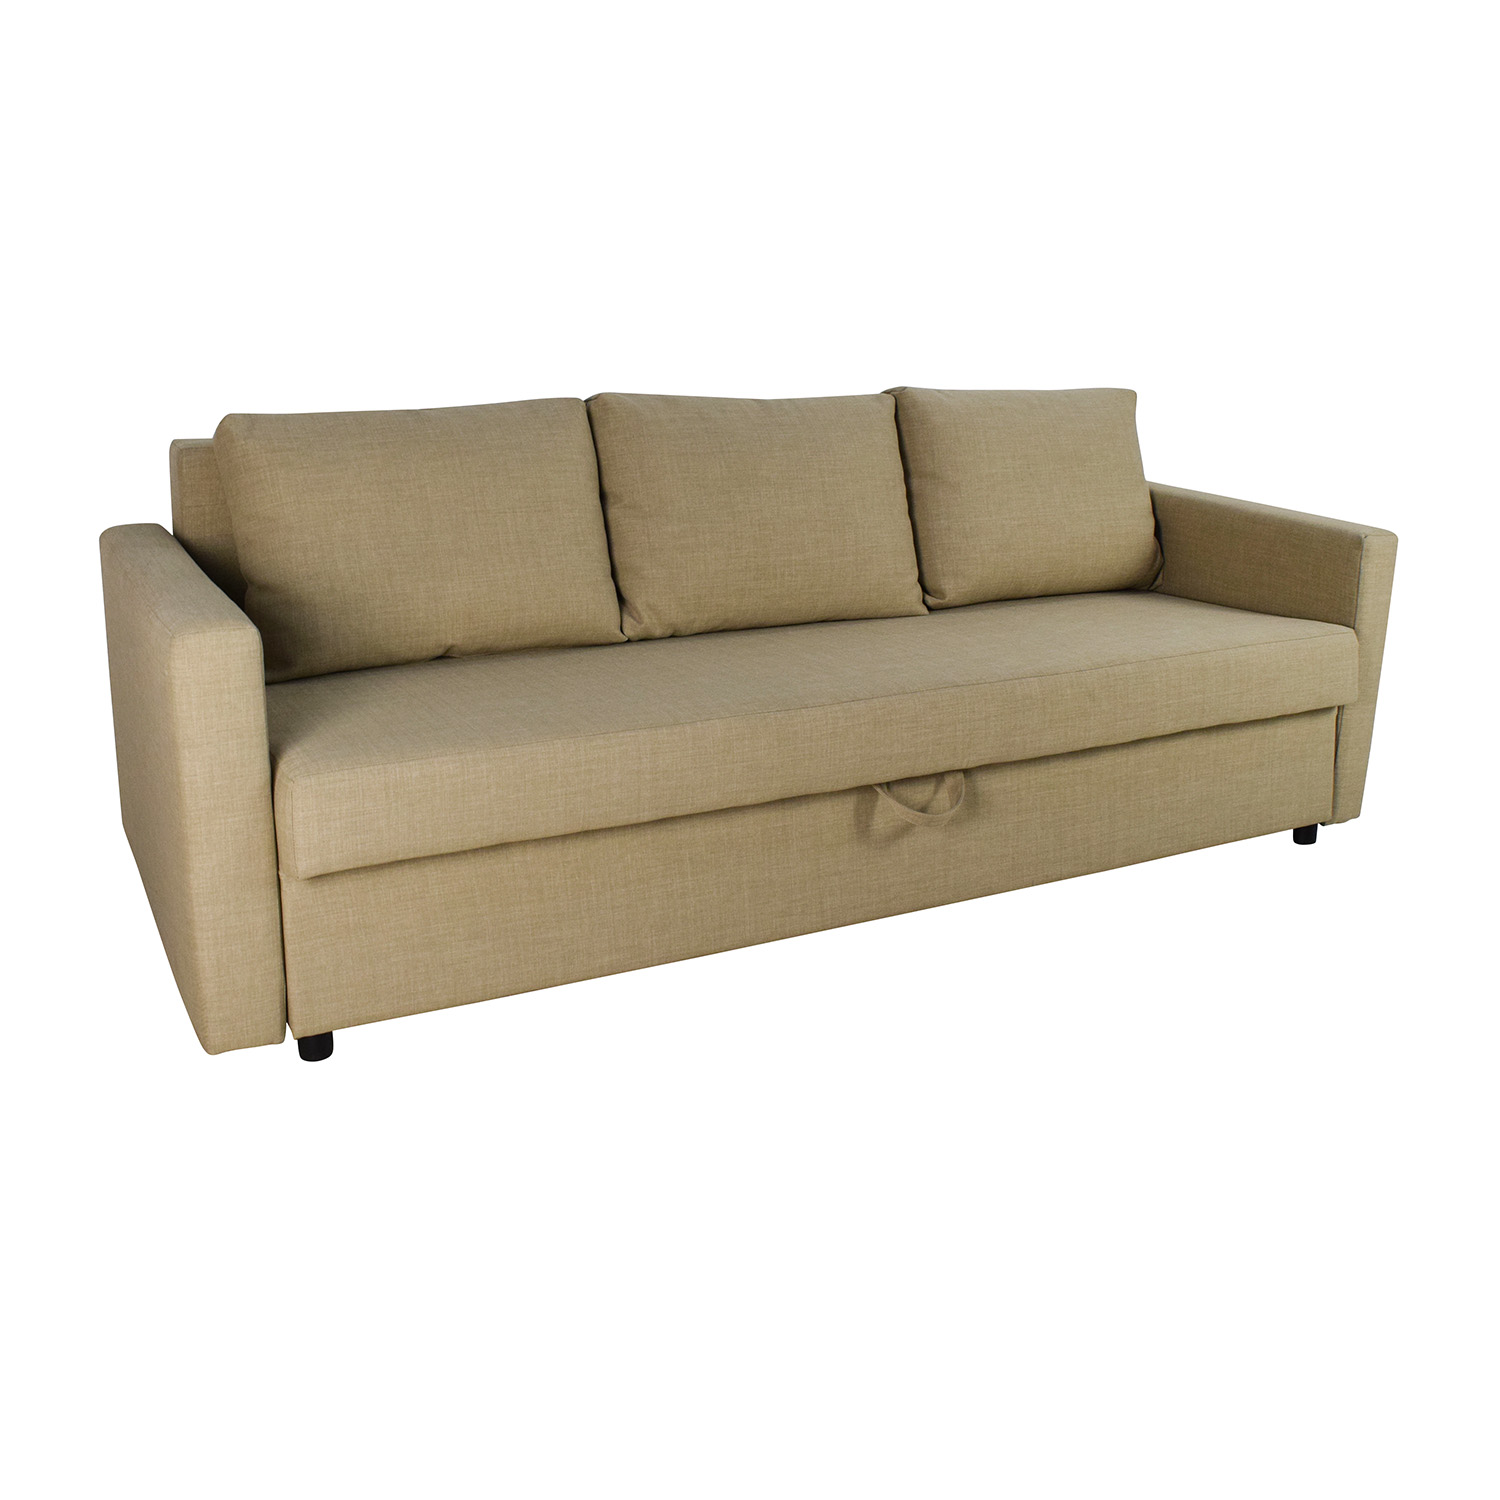 Buying A Second Hand Sofa 62 Off Ikea Friheten Sleeper Sofa With Storage Sofas